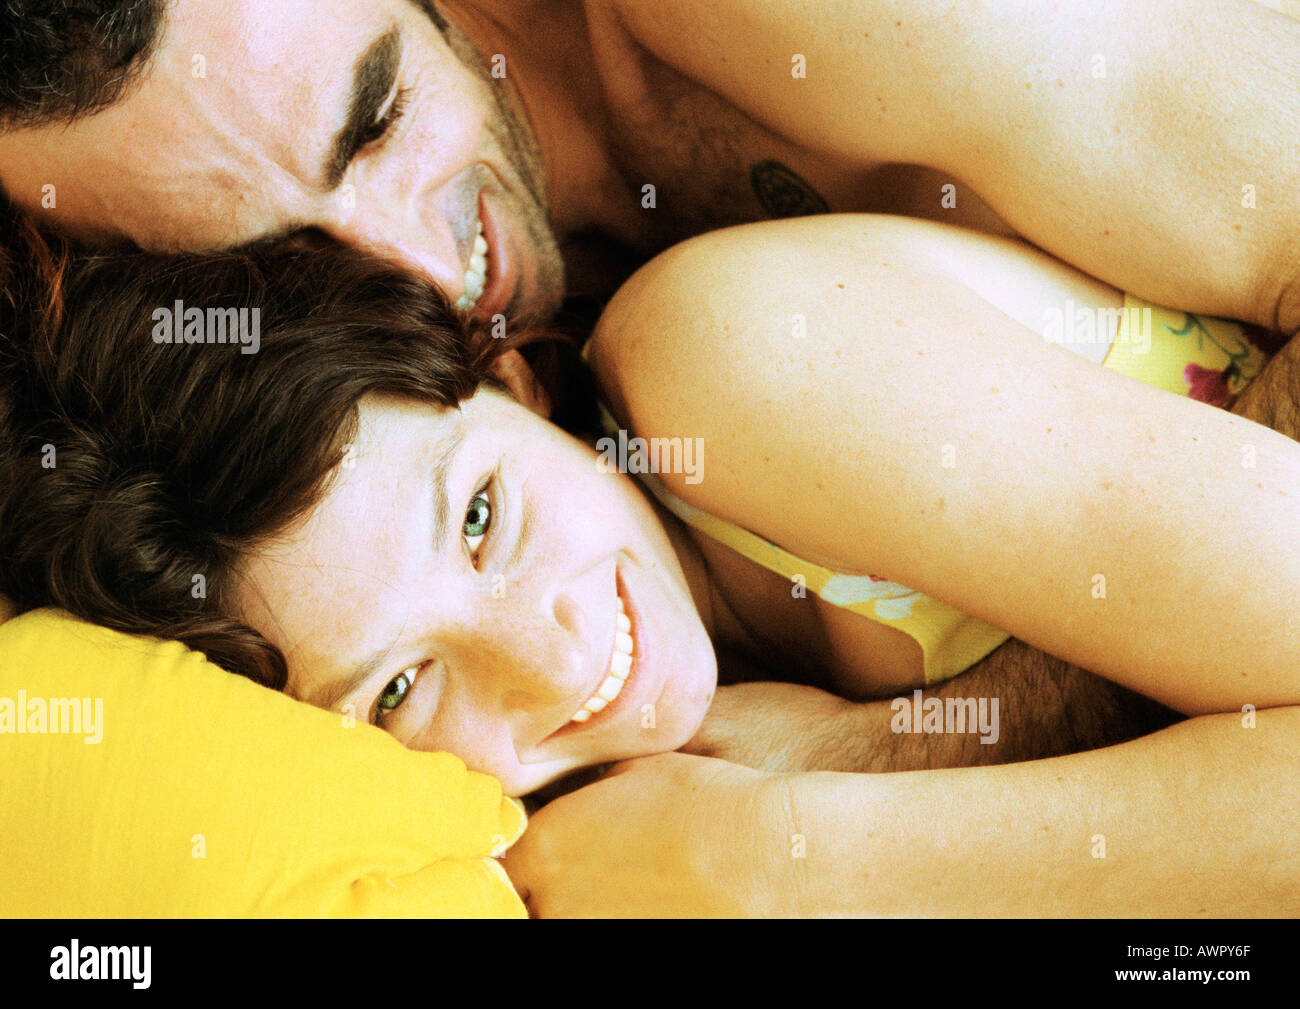 Couple in bed, man lying on woman's back, close-up. Stock Photo